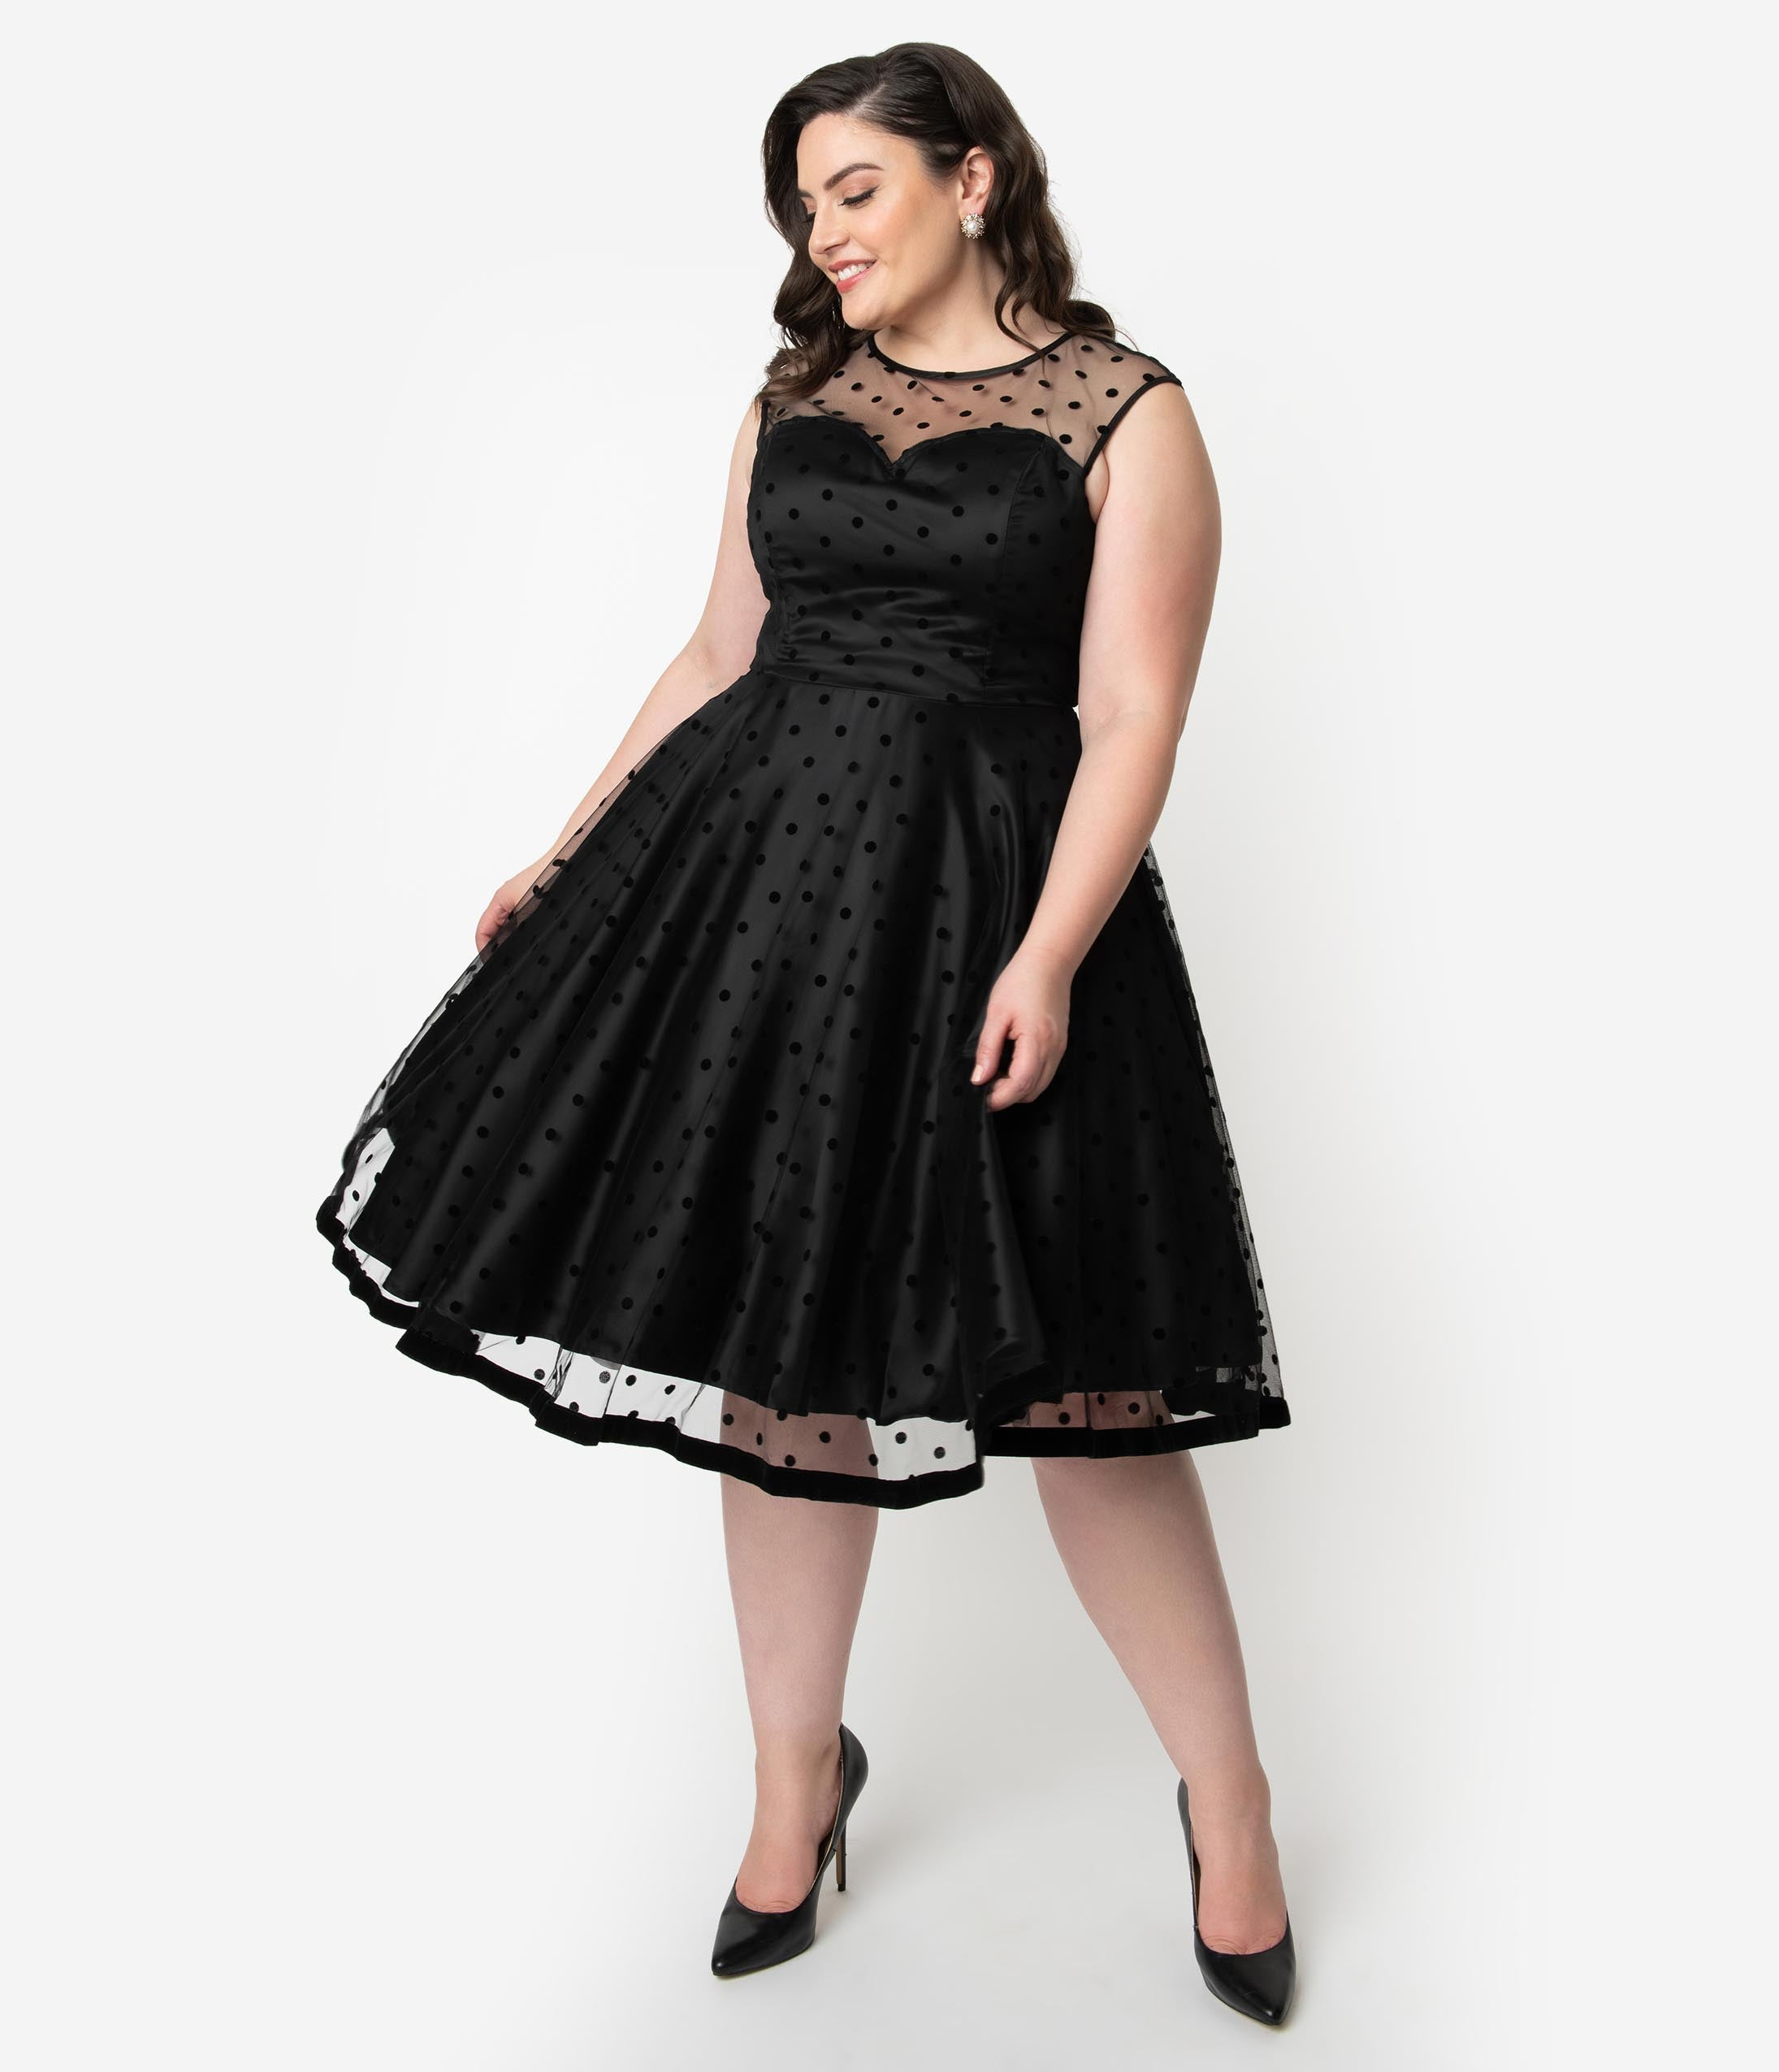 1950s Cocktail Dresses, Party Dresses Collectif Plus Size 1950S Style Black Swiss Dot Illusion Neckline Faye Swing Dress $168.00 AT vintagedancer.com